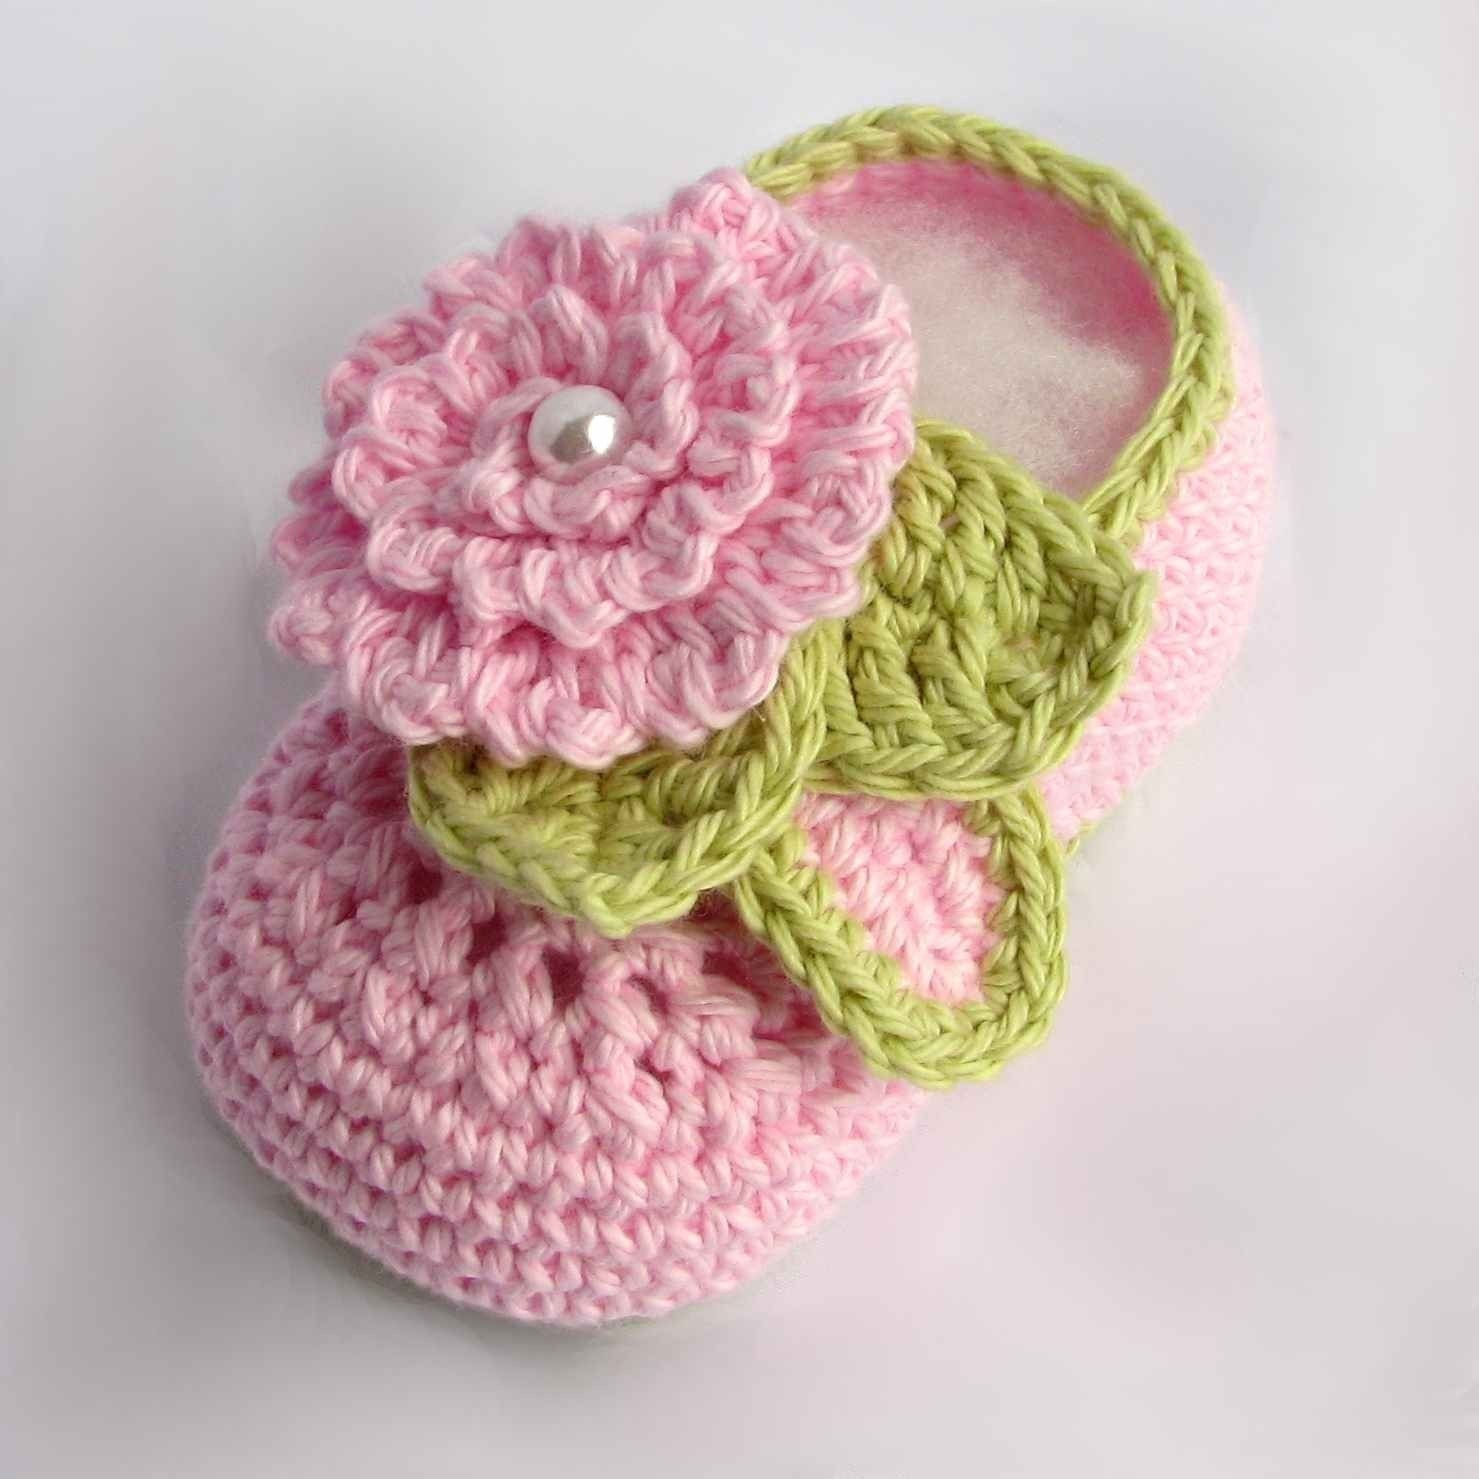 Crochet Baby Booties with flowers and pearl centers pdf